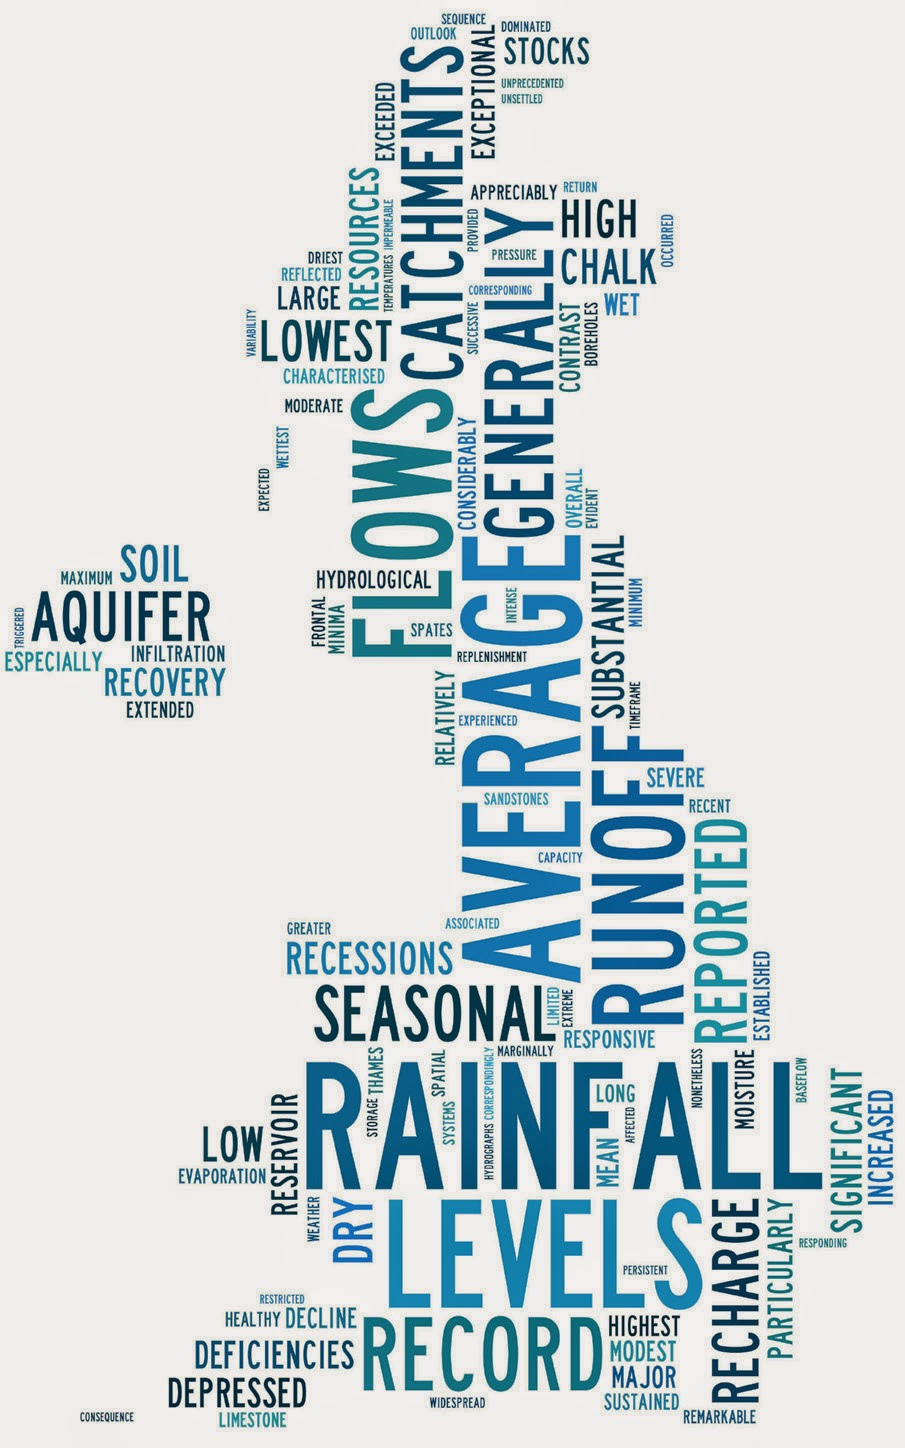 World cloud based on Terry Marsh's publications